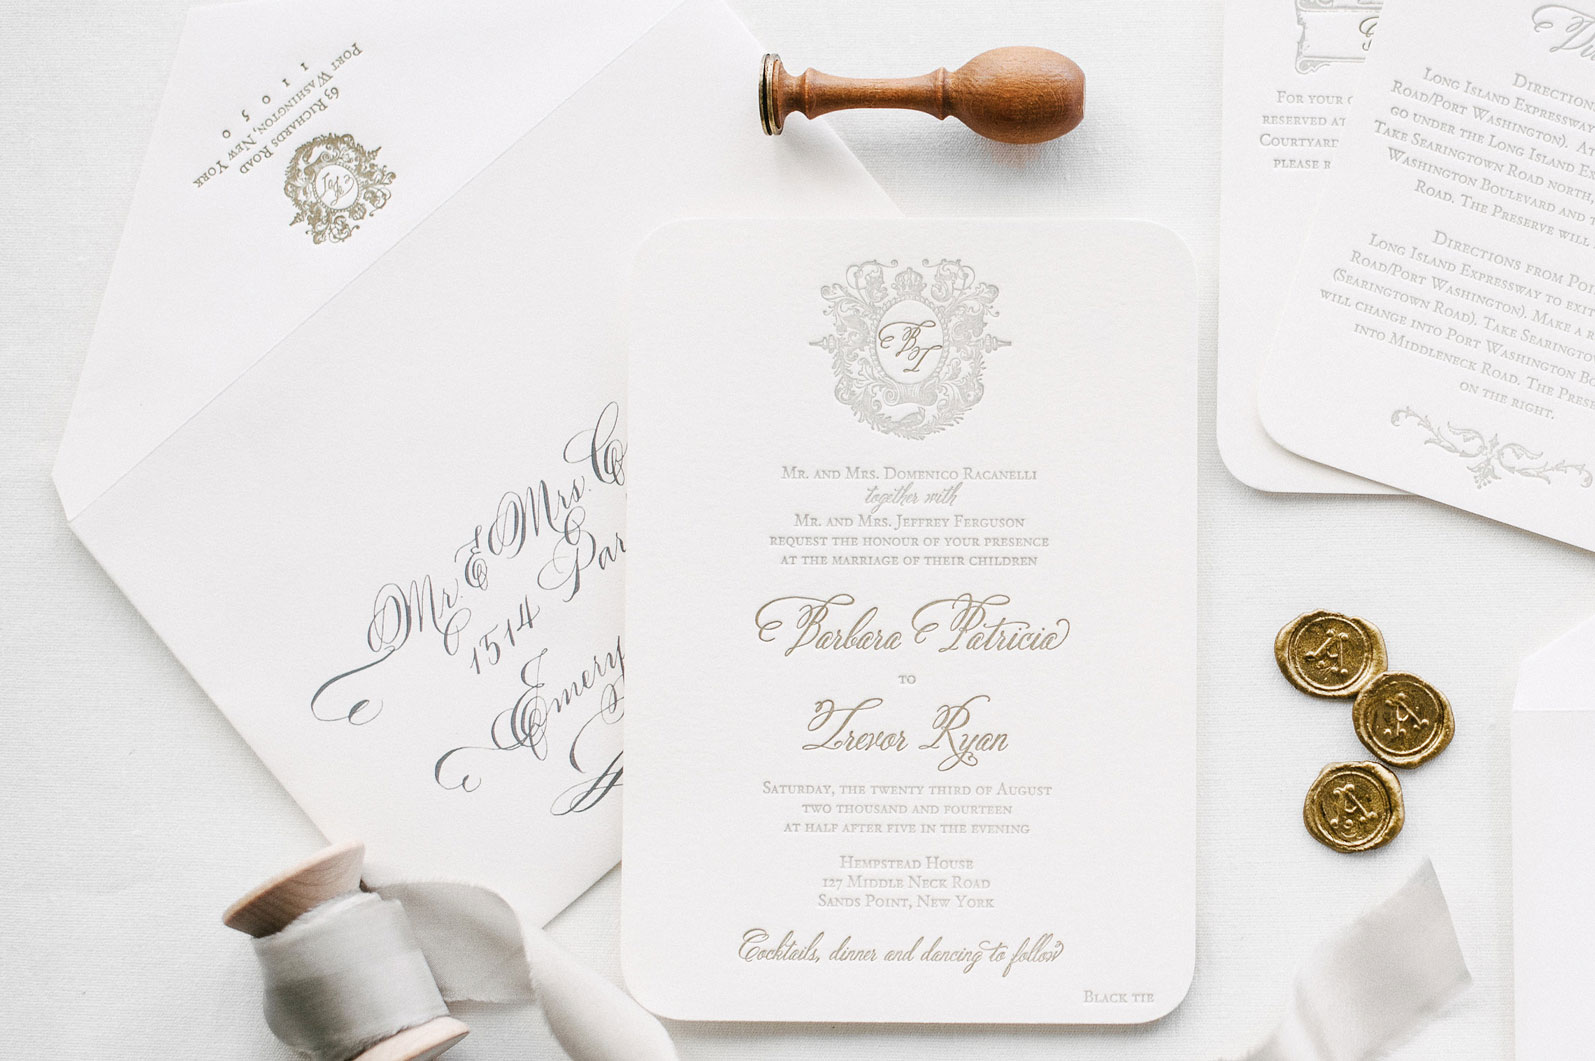 How to Order Custom Letterpress Wedding Invitations | De-mystifying the Process